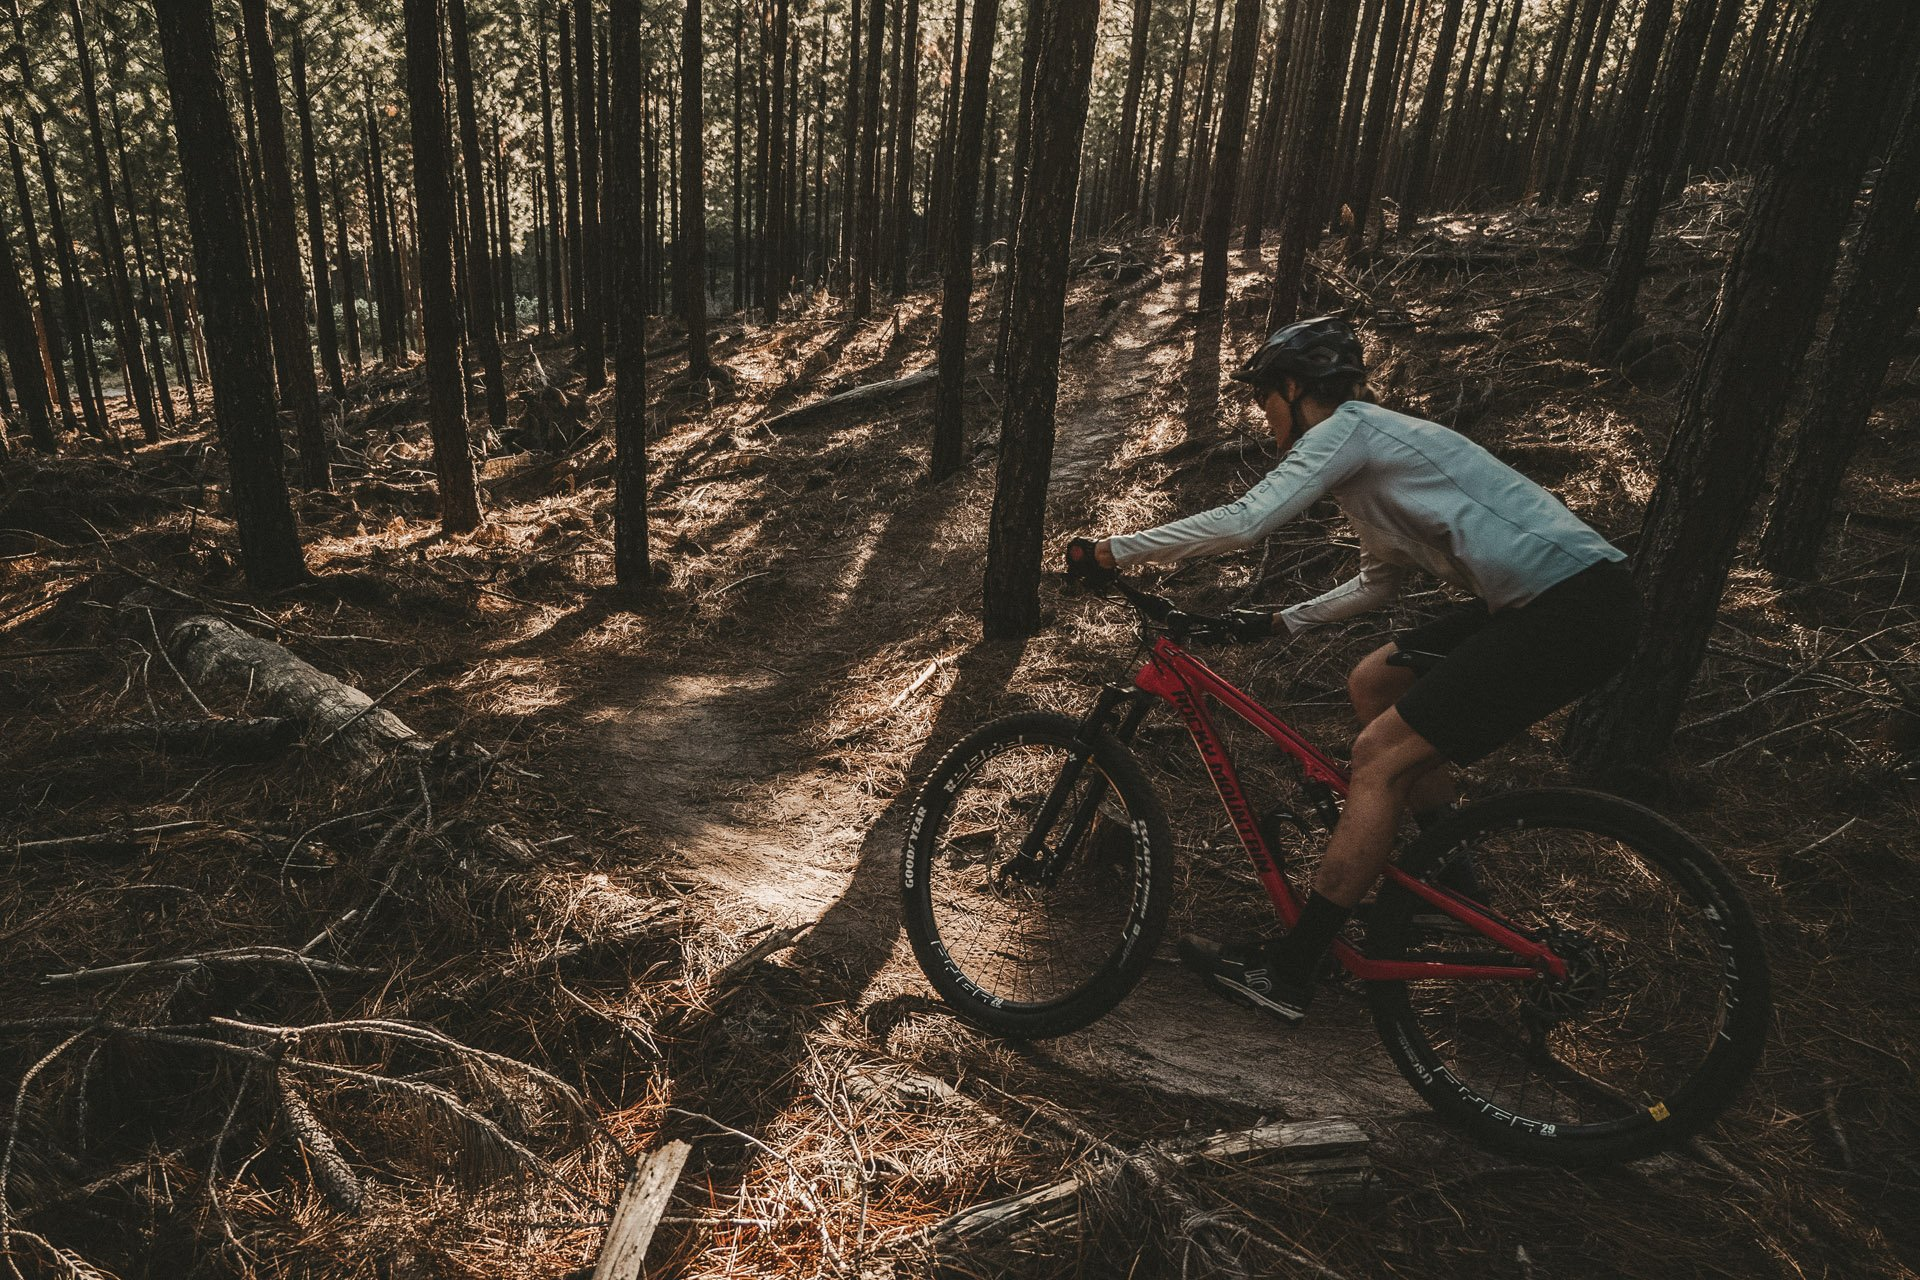 Lady riding trails on Goodyear off road tires